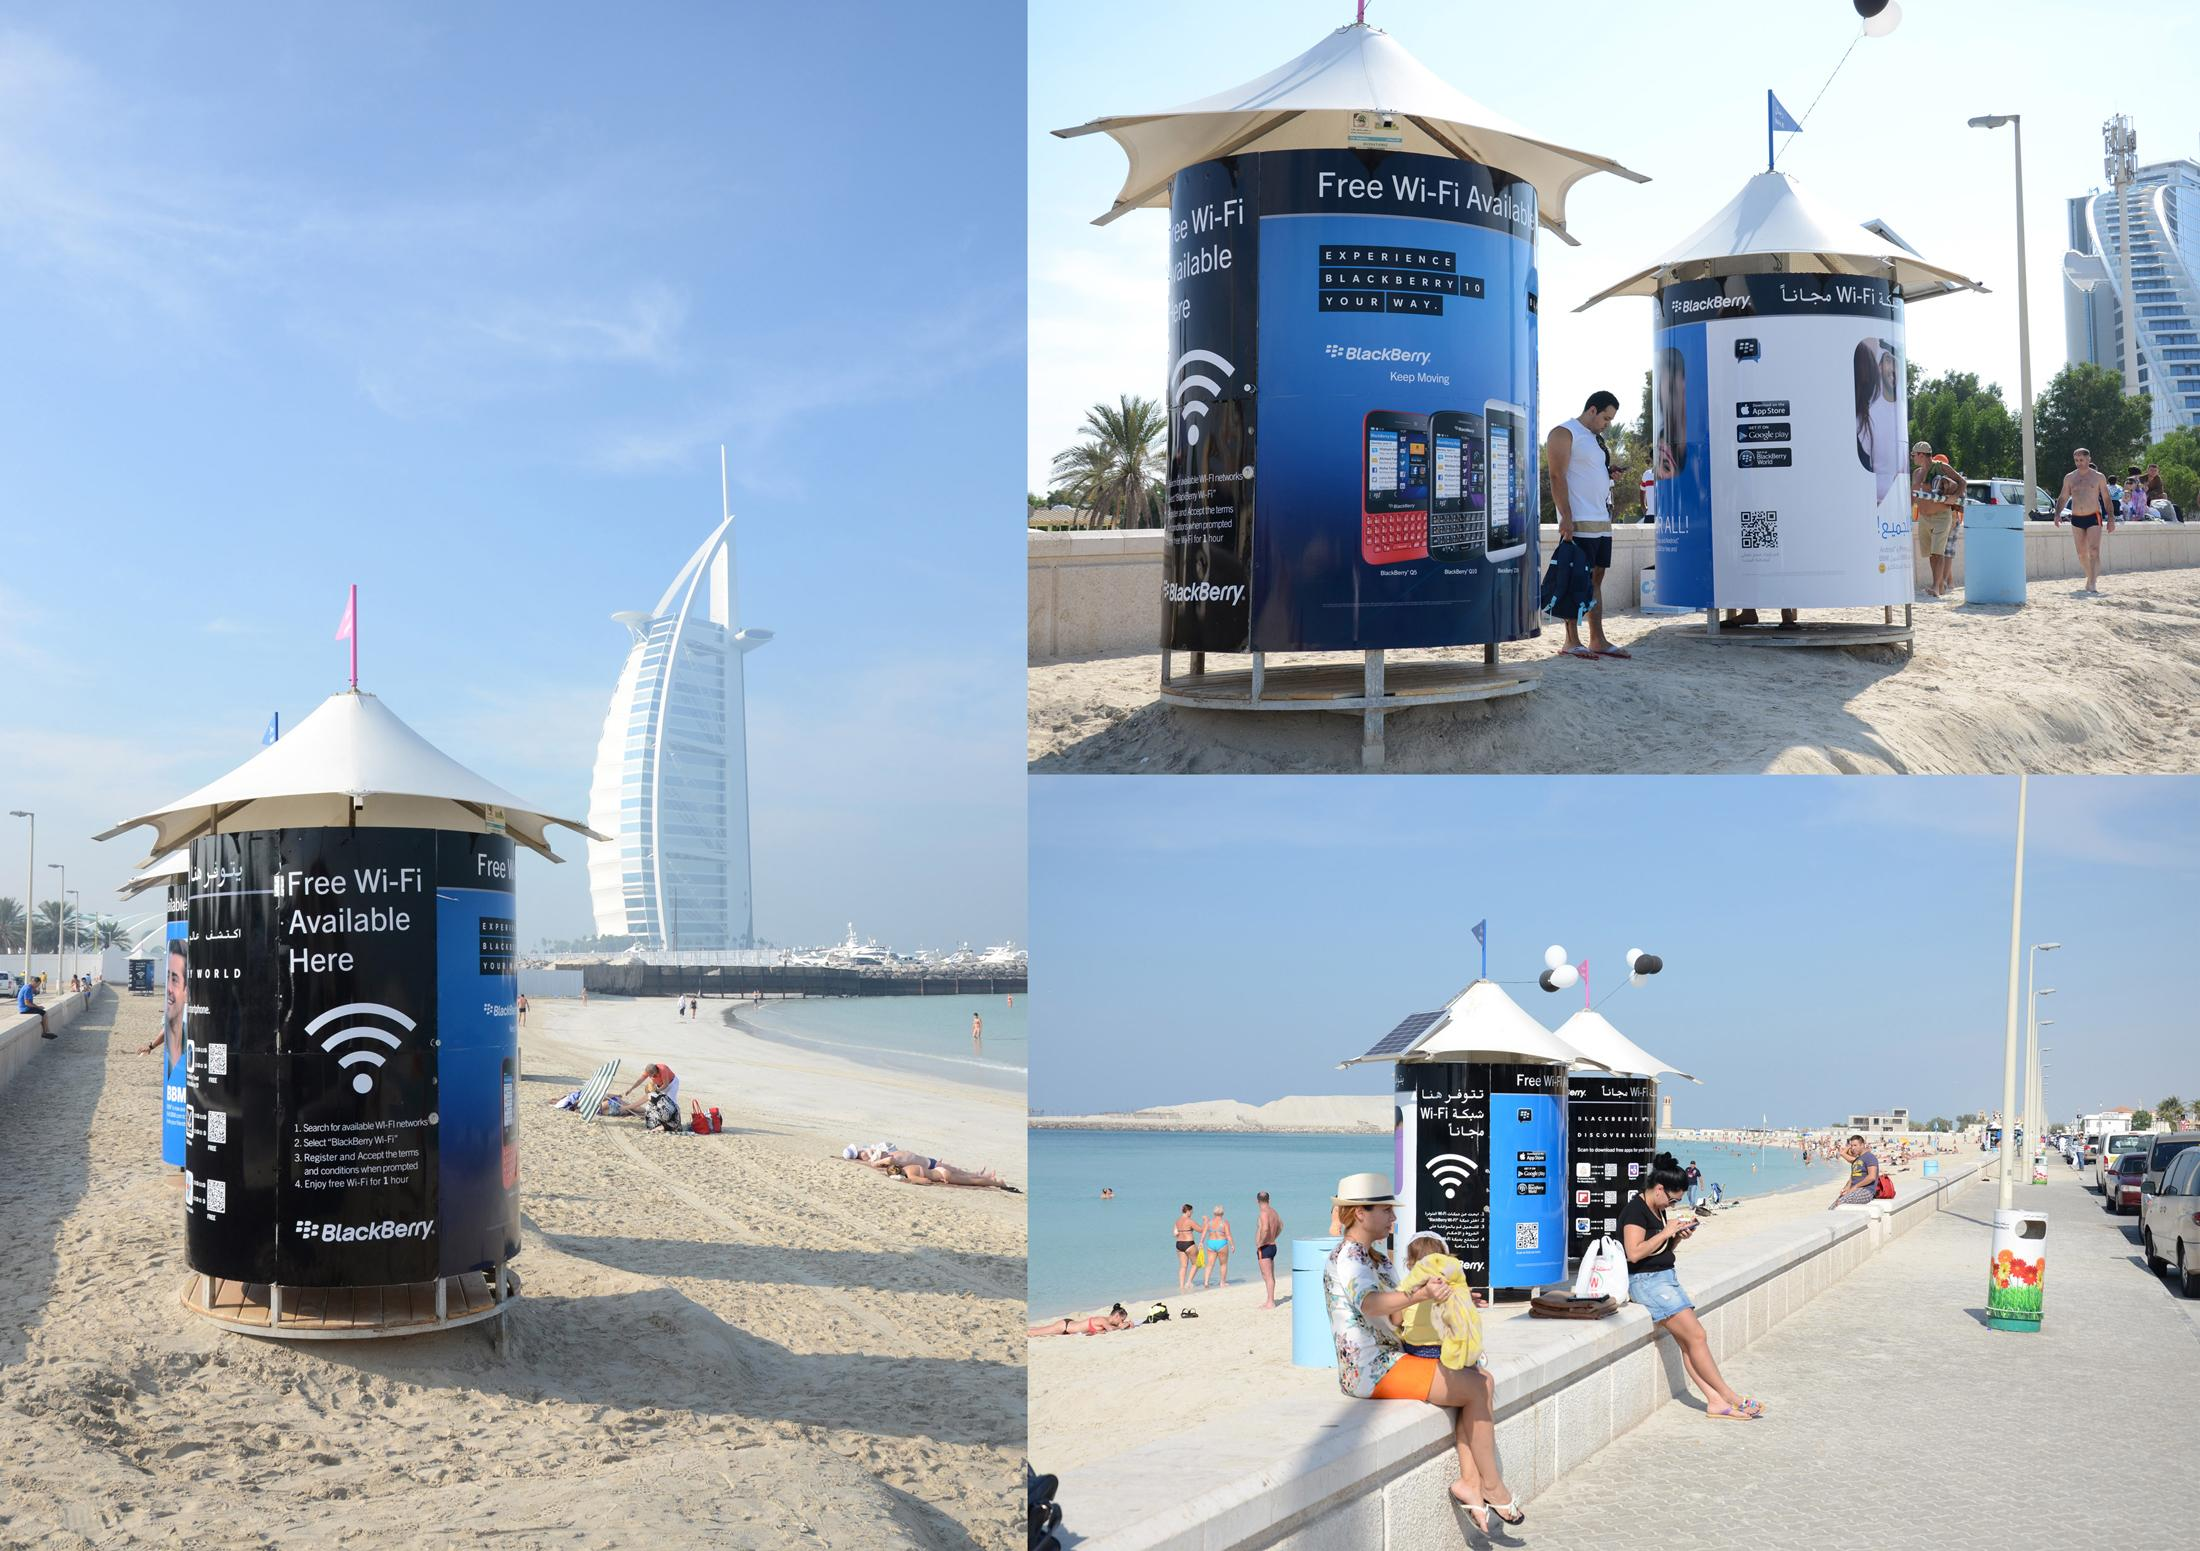 BlackBerry Outdoor Ad -  Free WiFi on the Beach